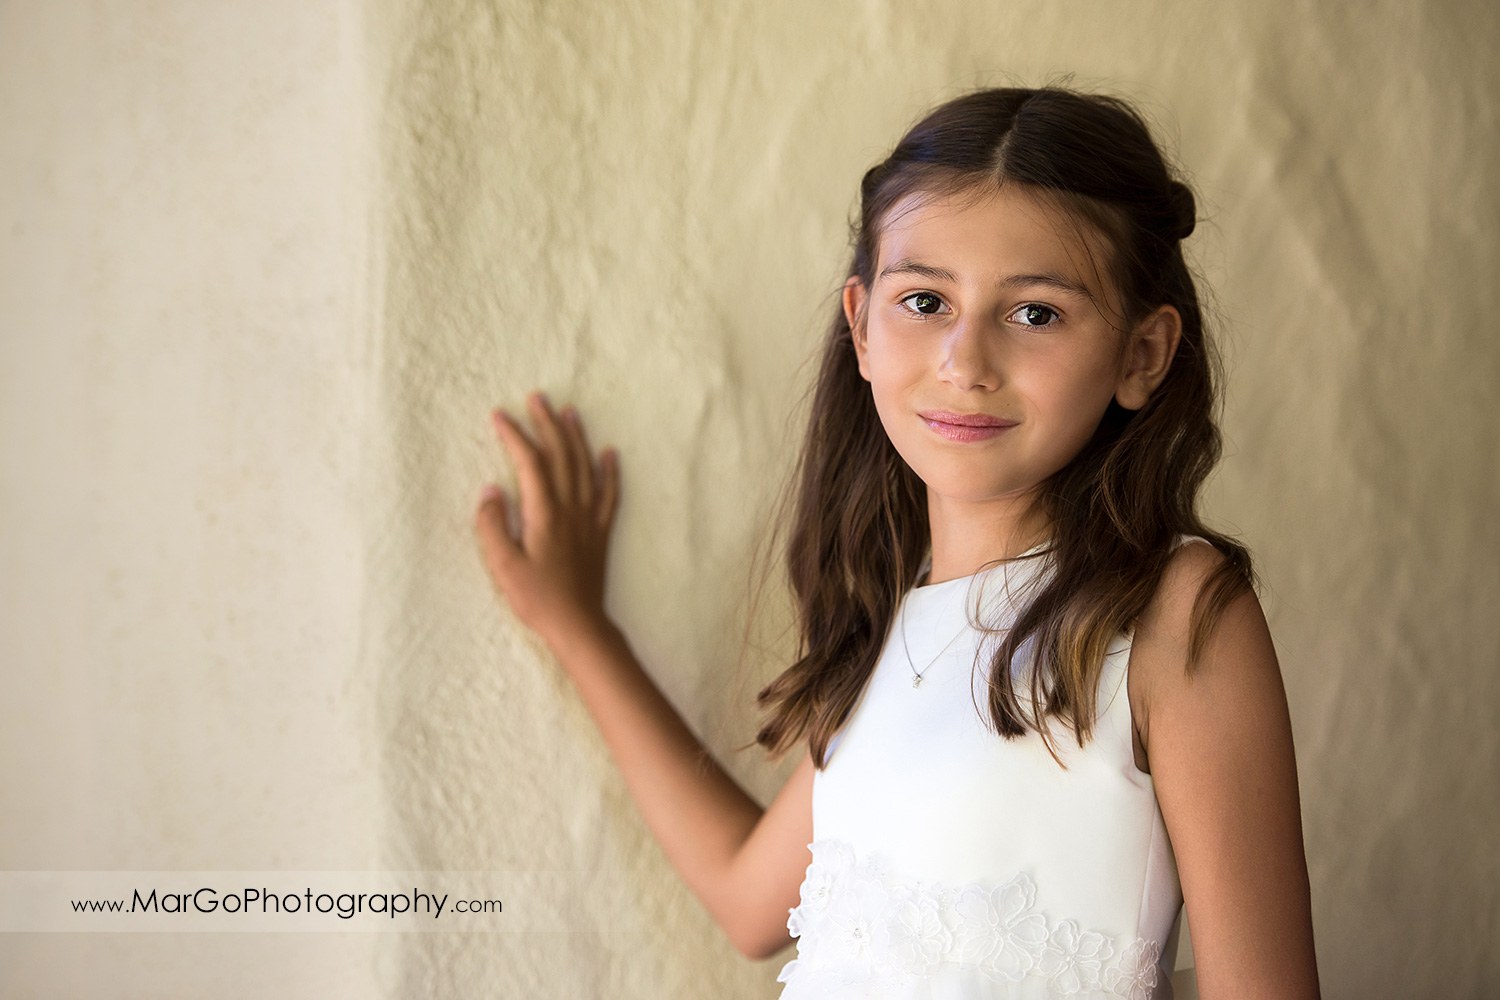 portrait of first communion girl in white dress on white wall at Cafe Wisteria in Menlo Park